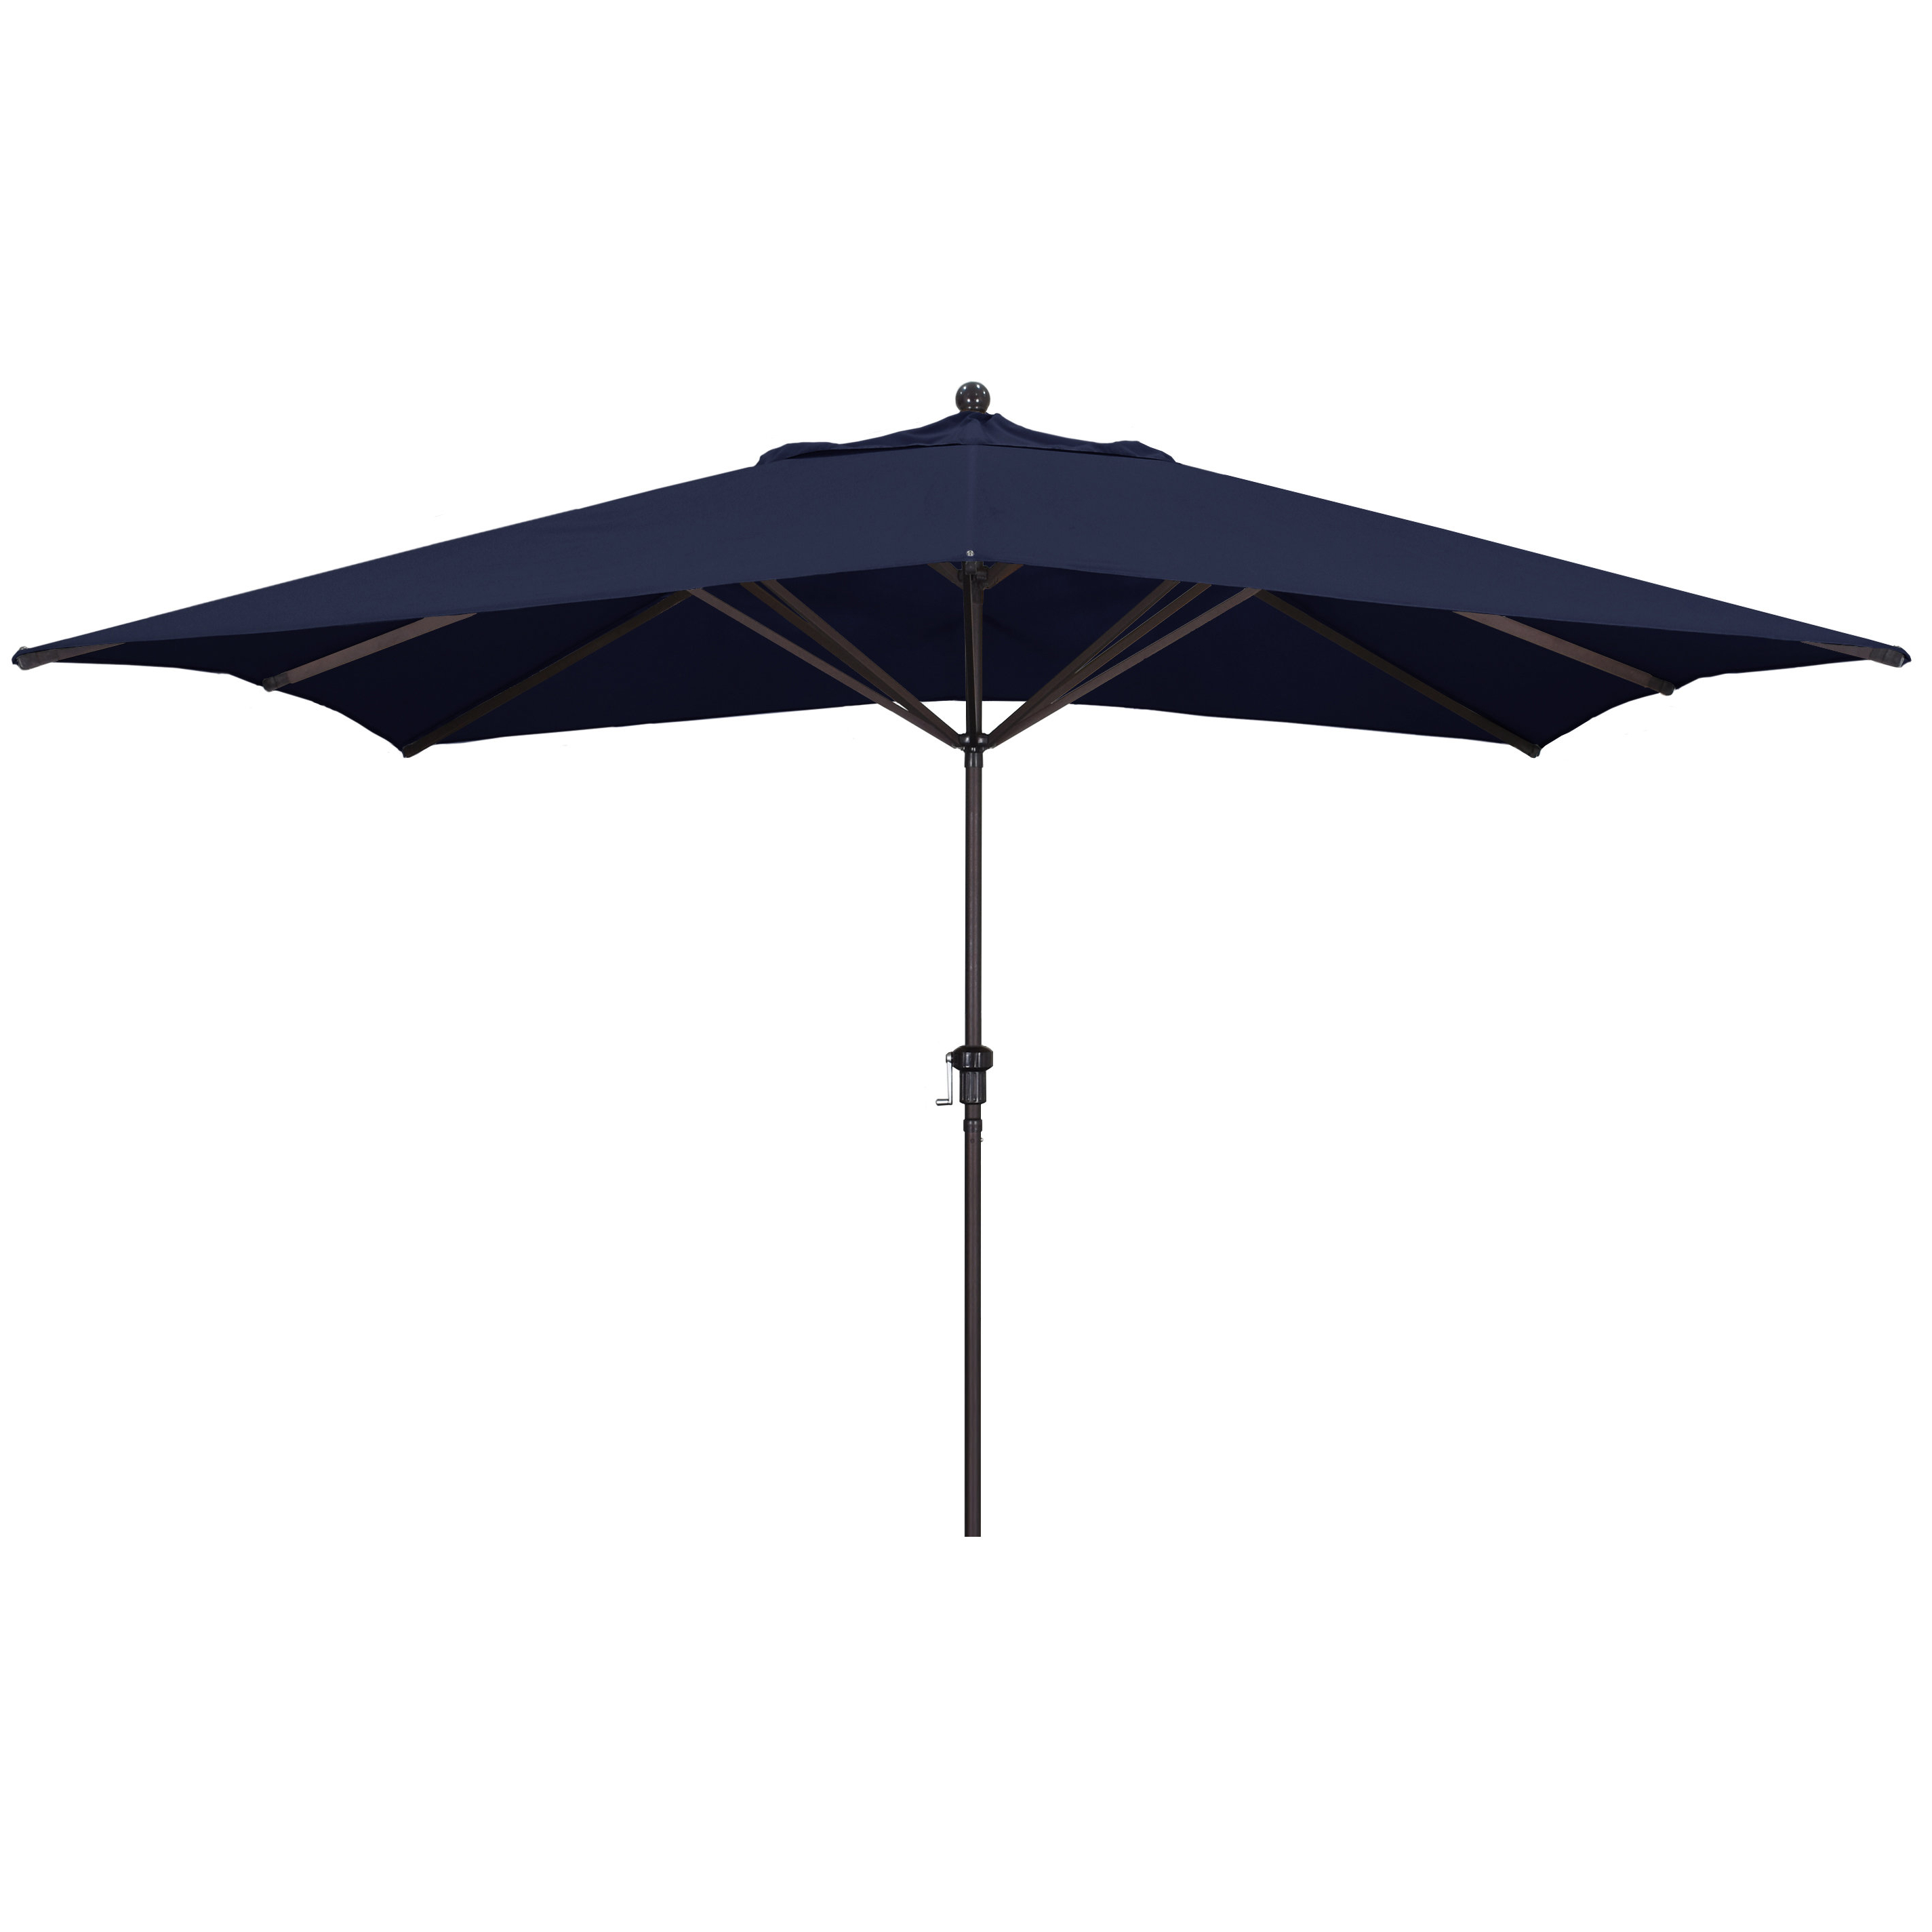 Jerrell Rectangular Market Umbrellas Intended For 2019 Carlton 11' X 8' Rectangular Market Umbrella (View 9 of 20)